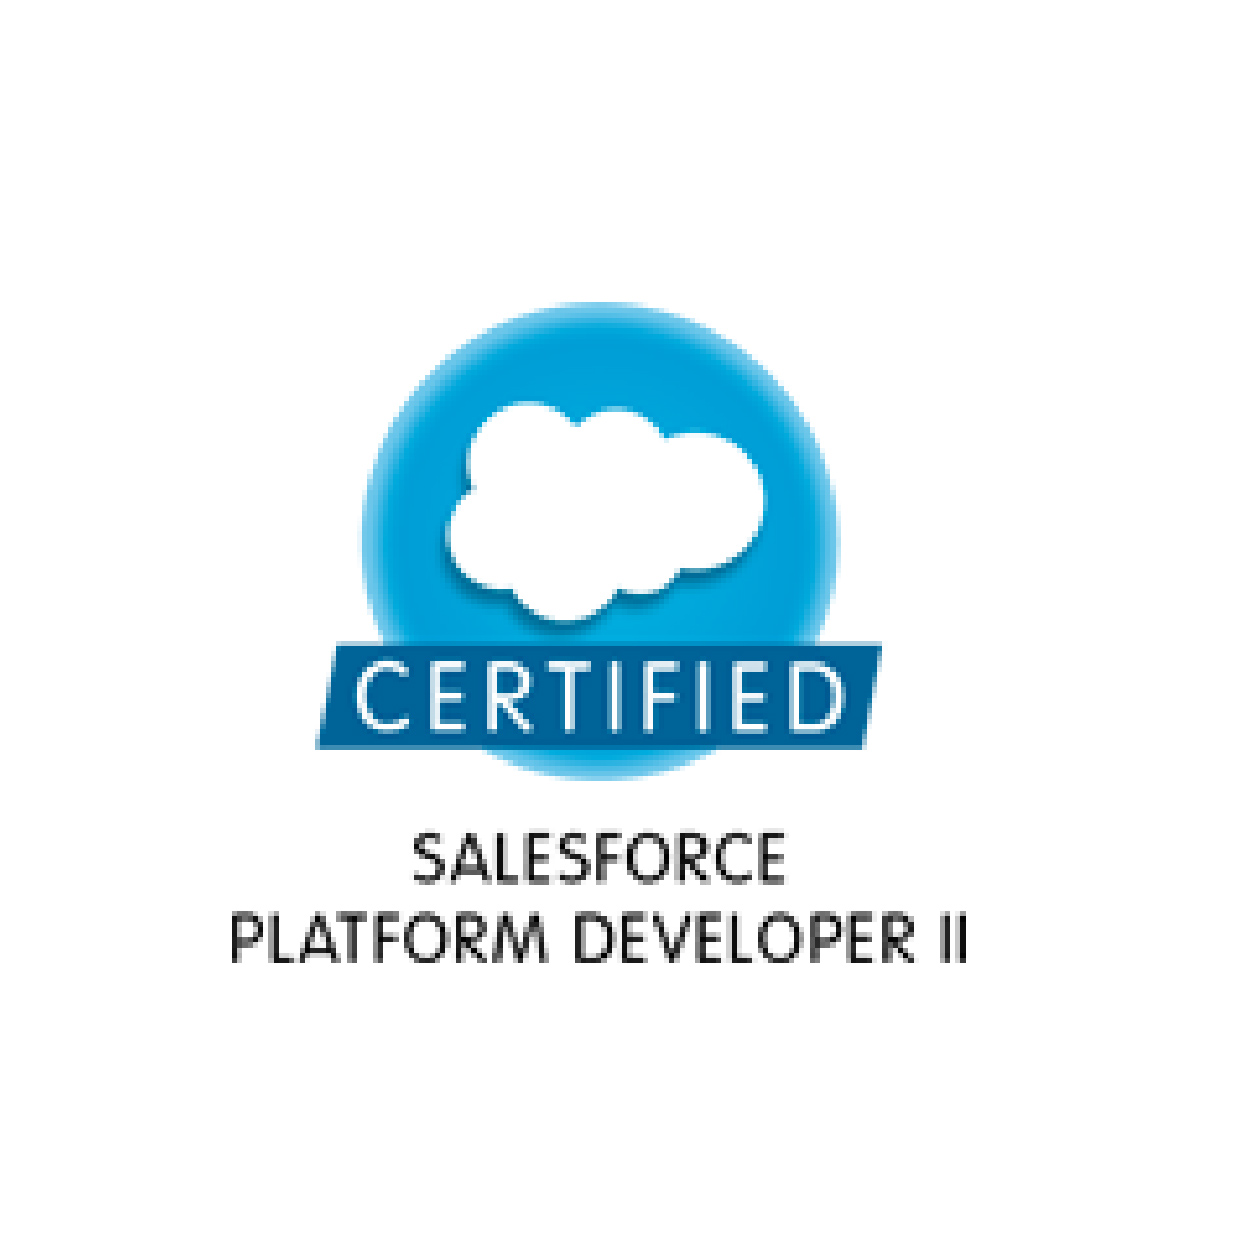 salesforce_certified-06.jpg